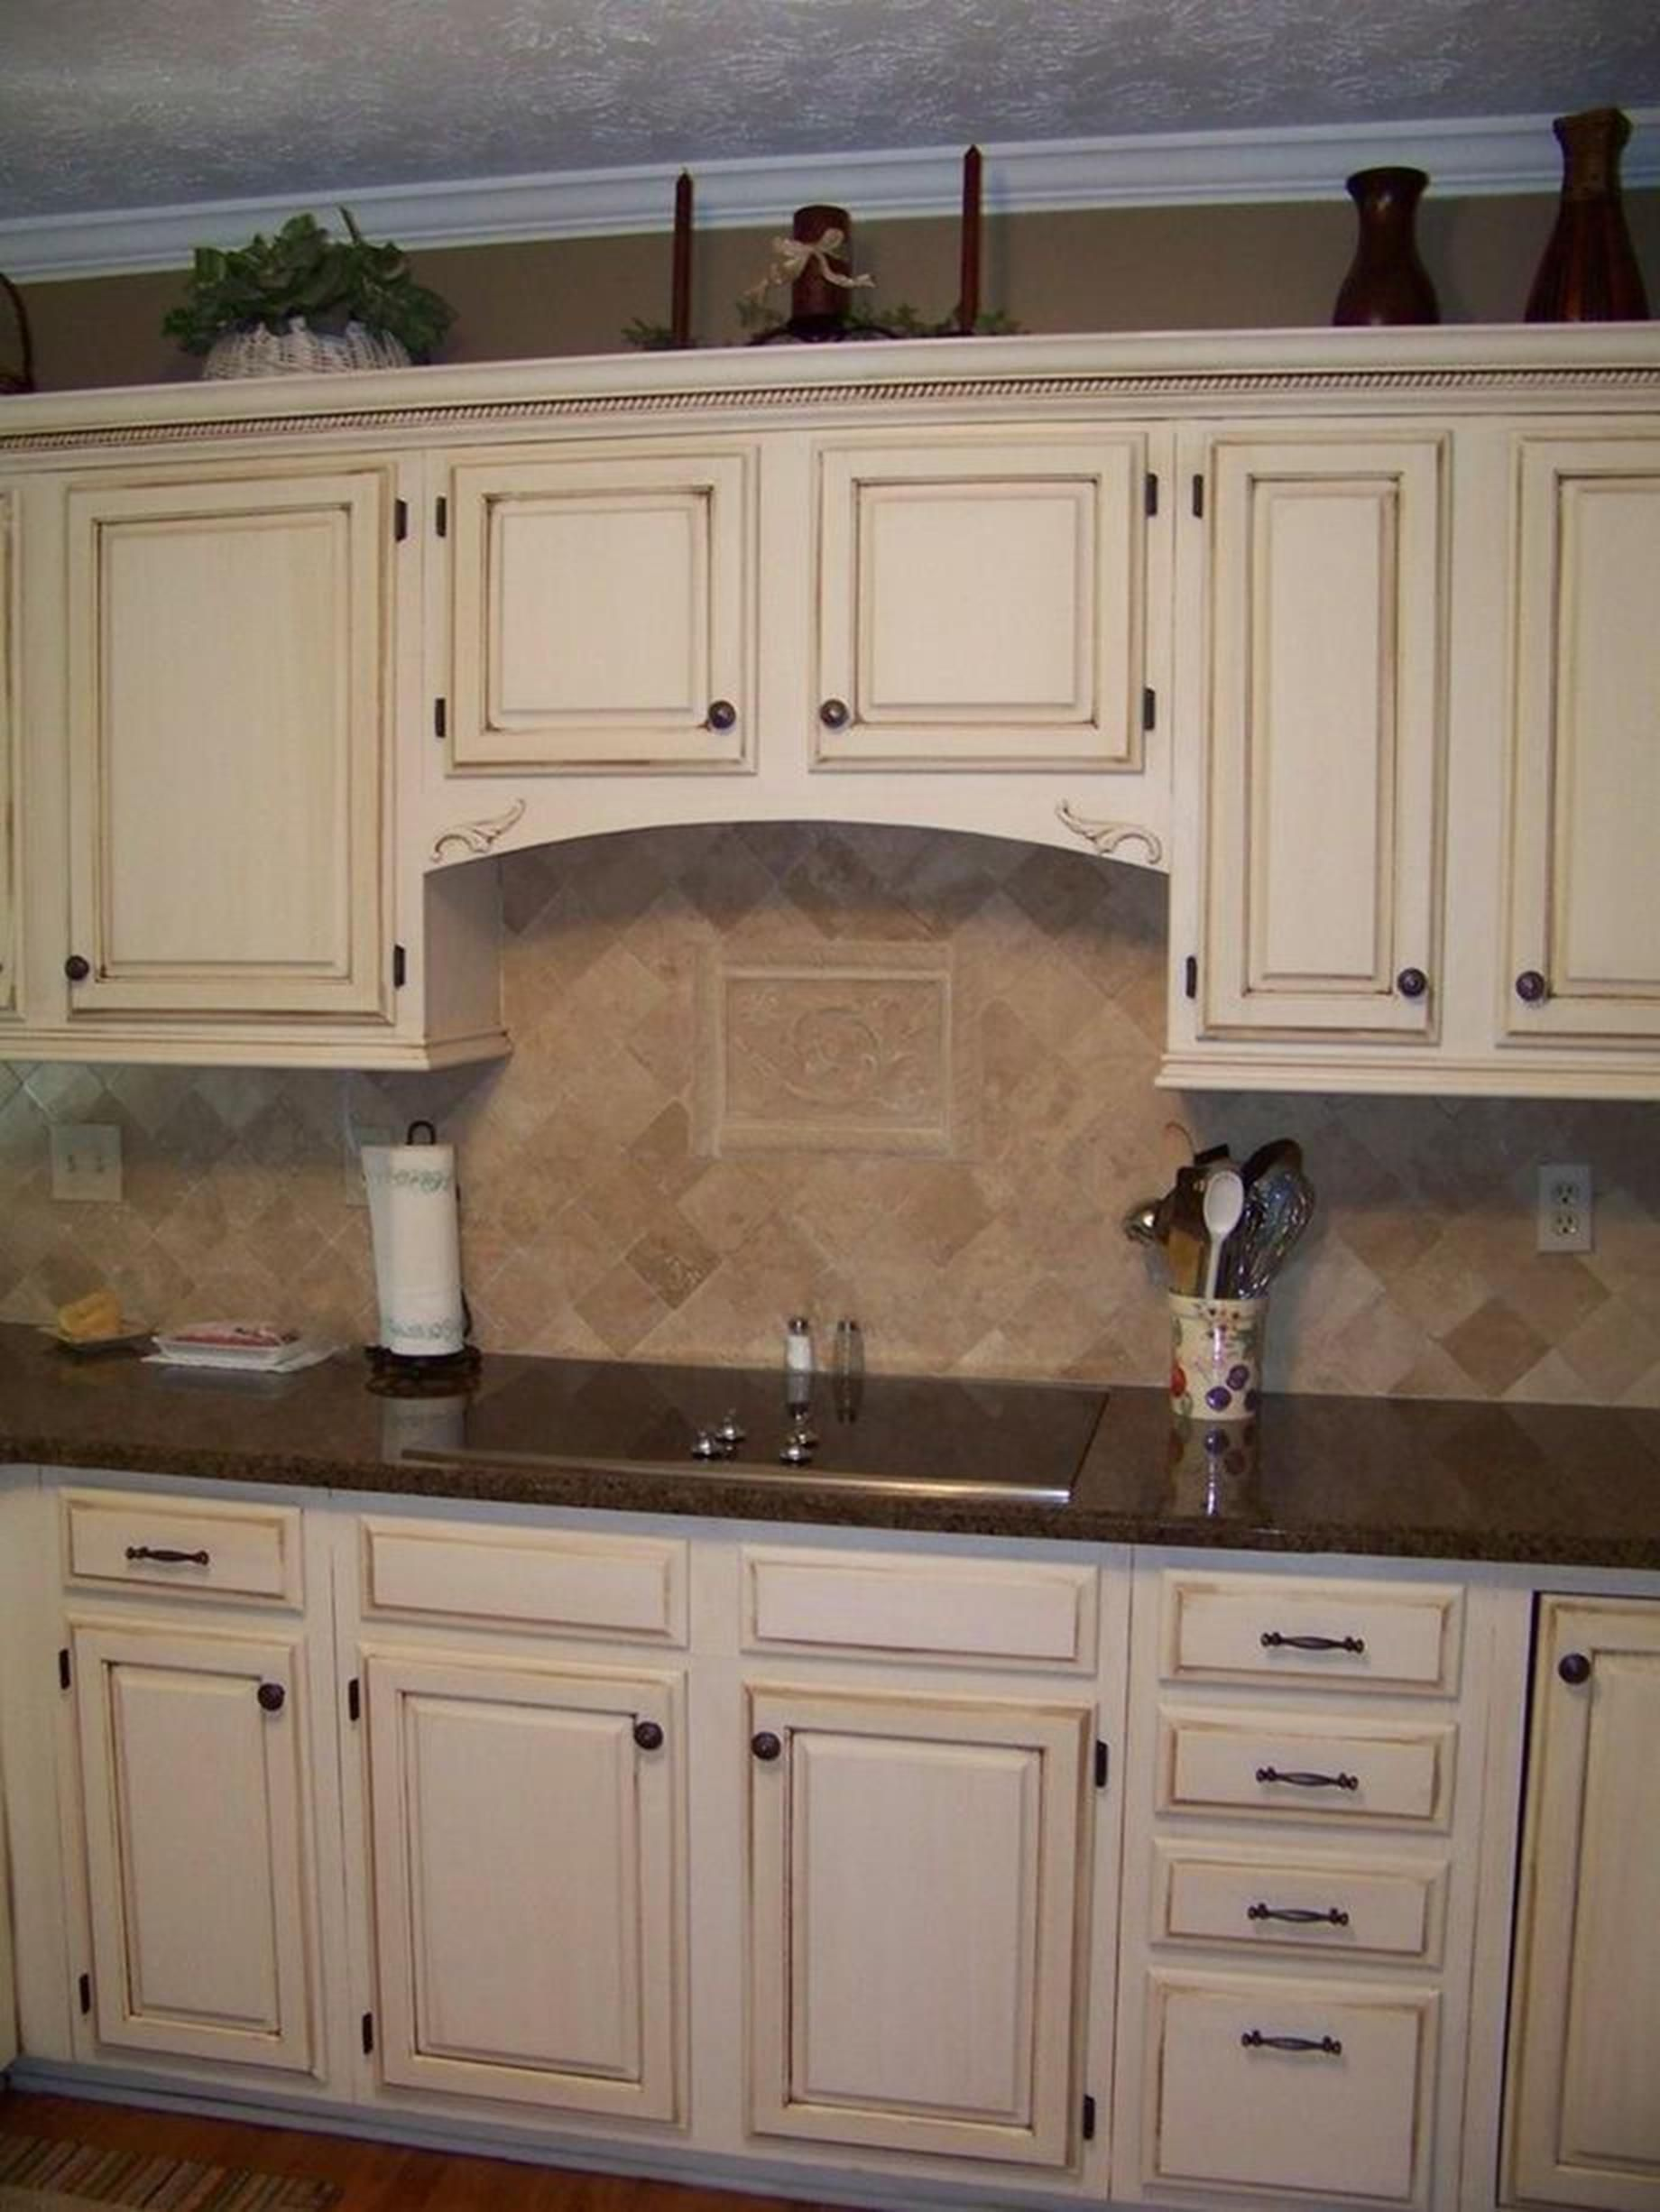 20 perfect kitchen wall colors with oak cabinets for 2019 kitchen cabinet colors cream on kitchen hutch id=89657